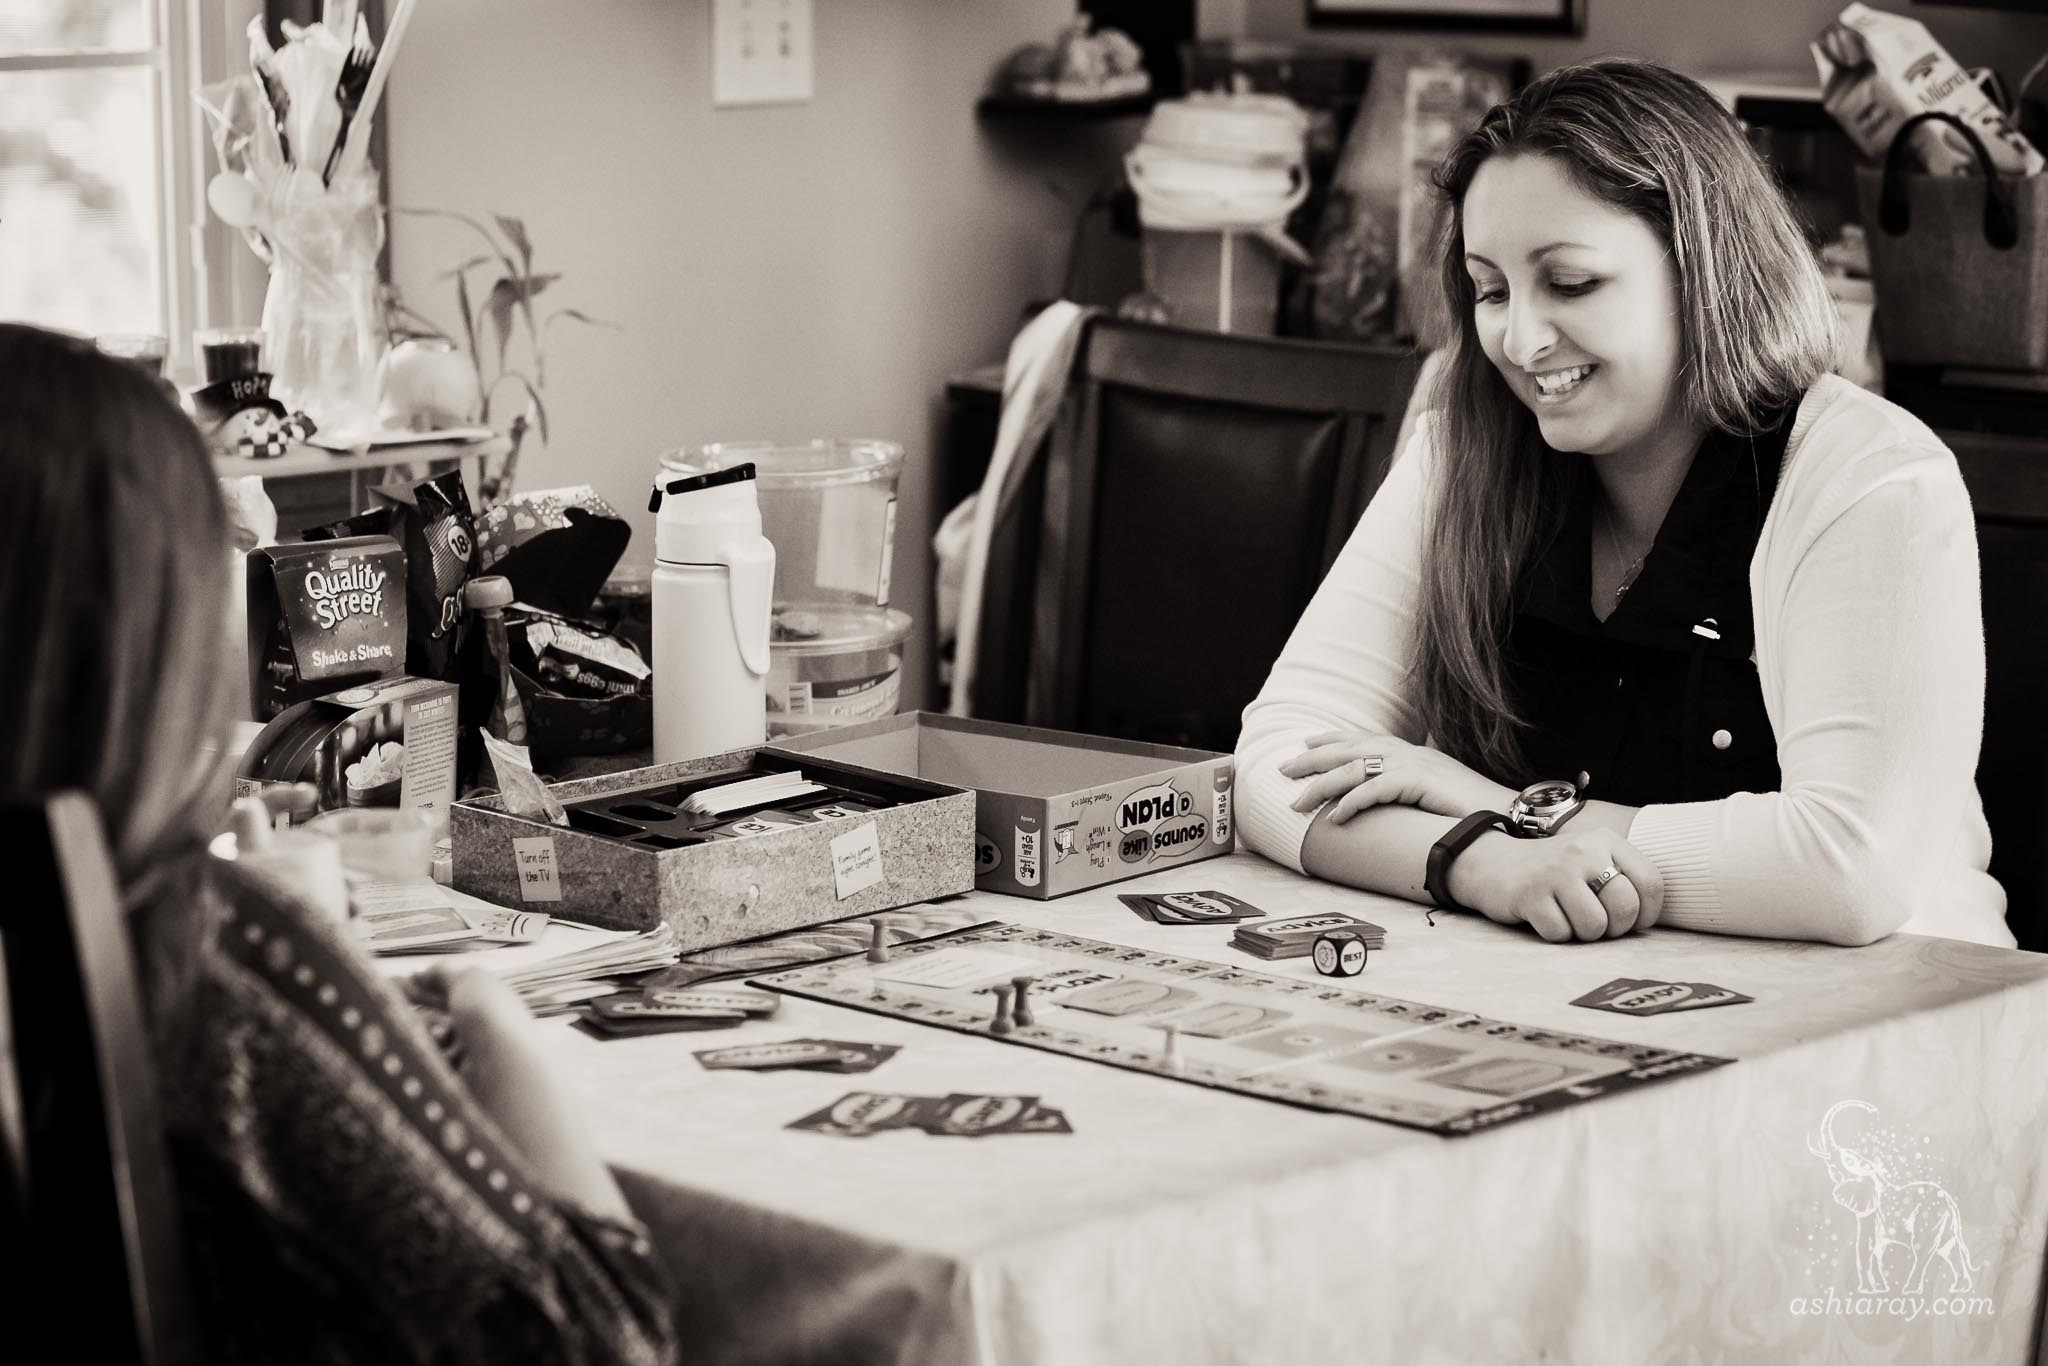 Woman smiles while playing board game